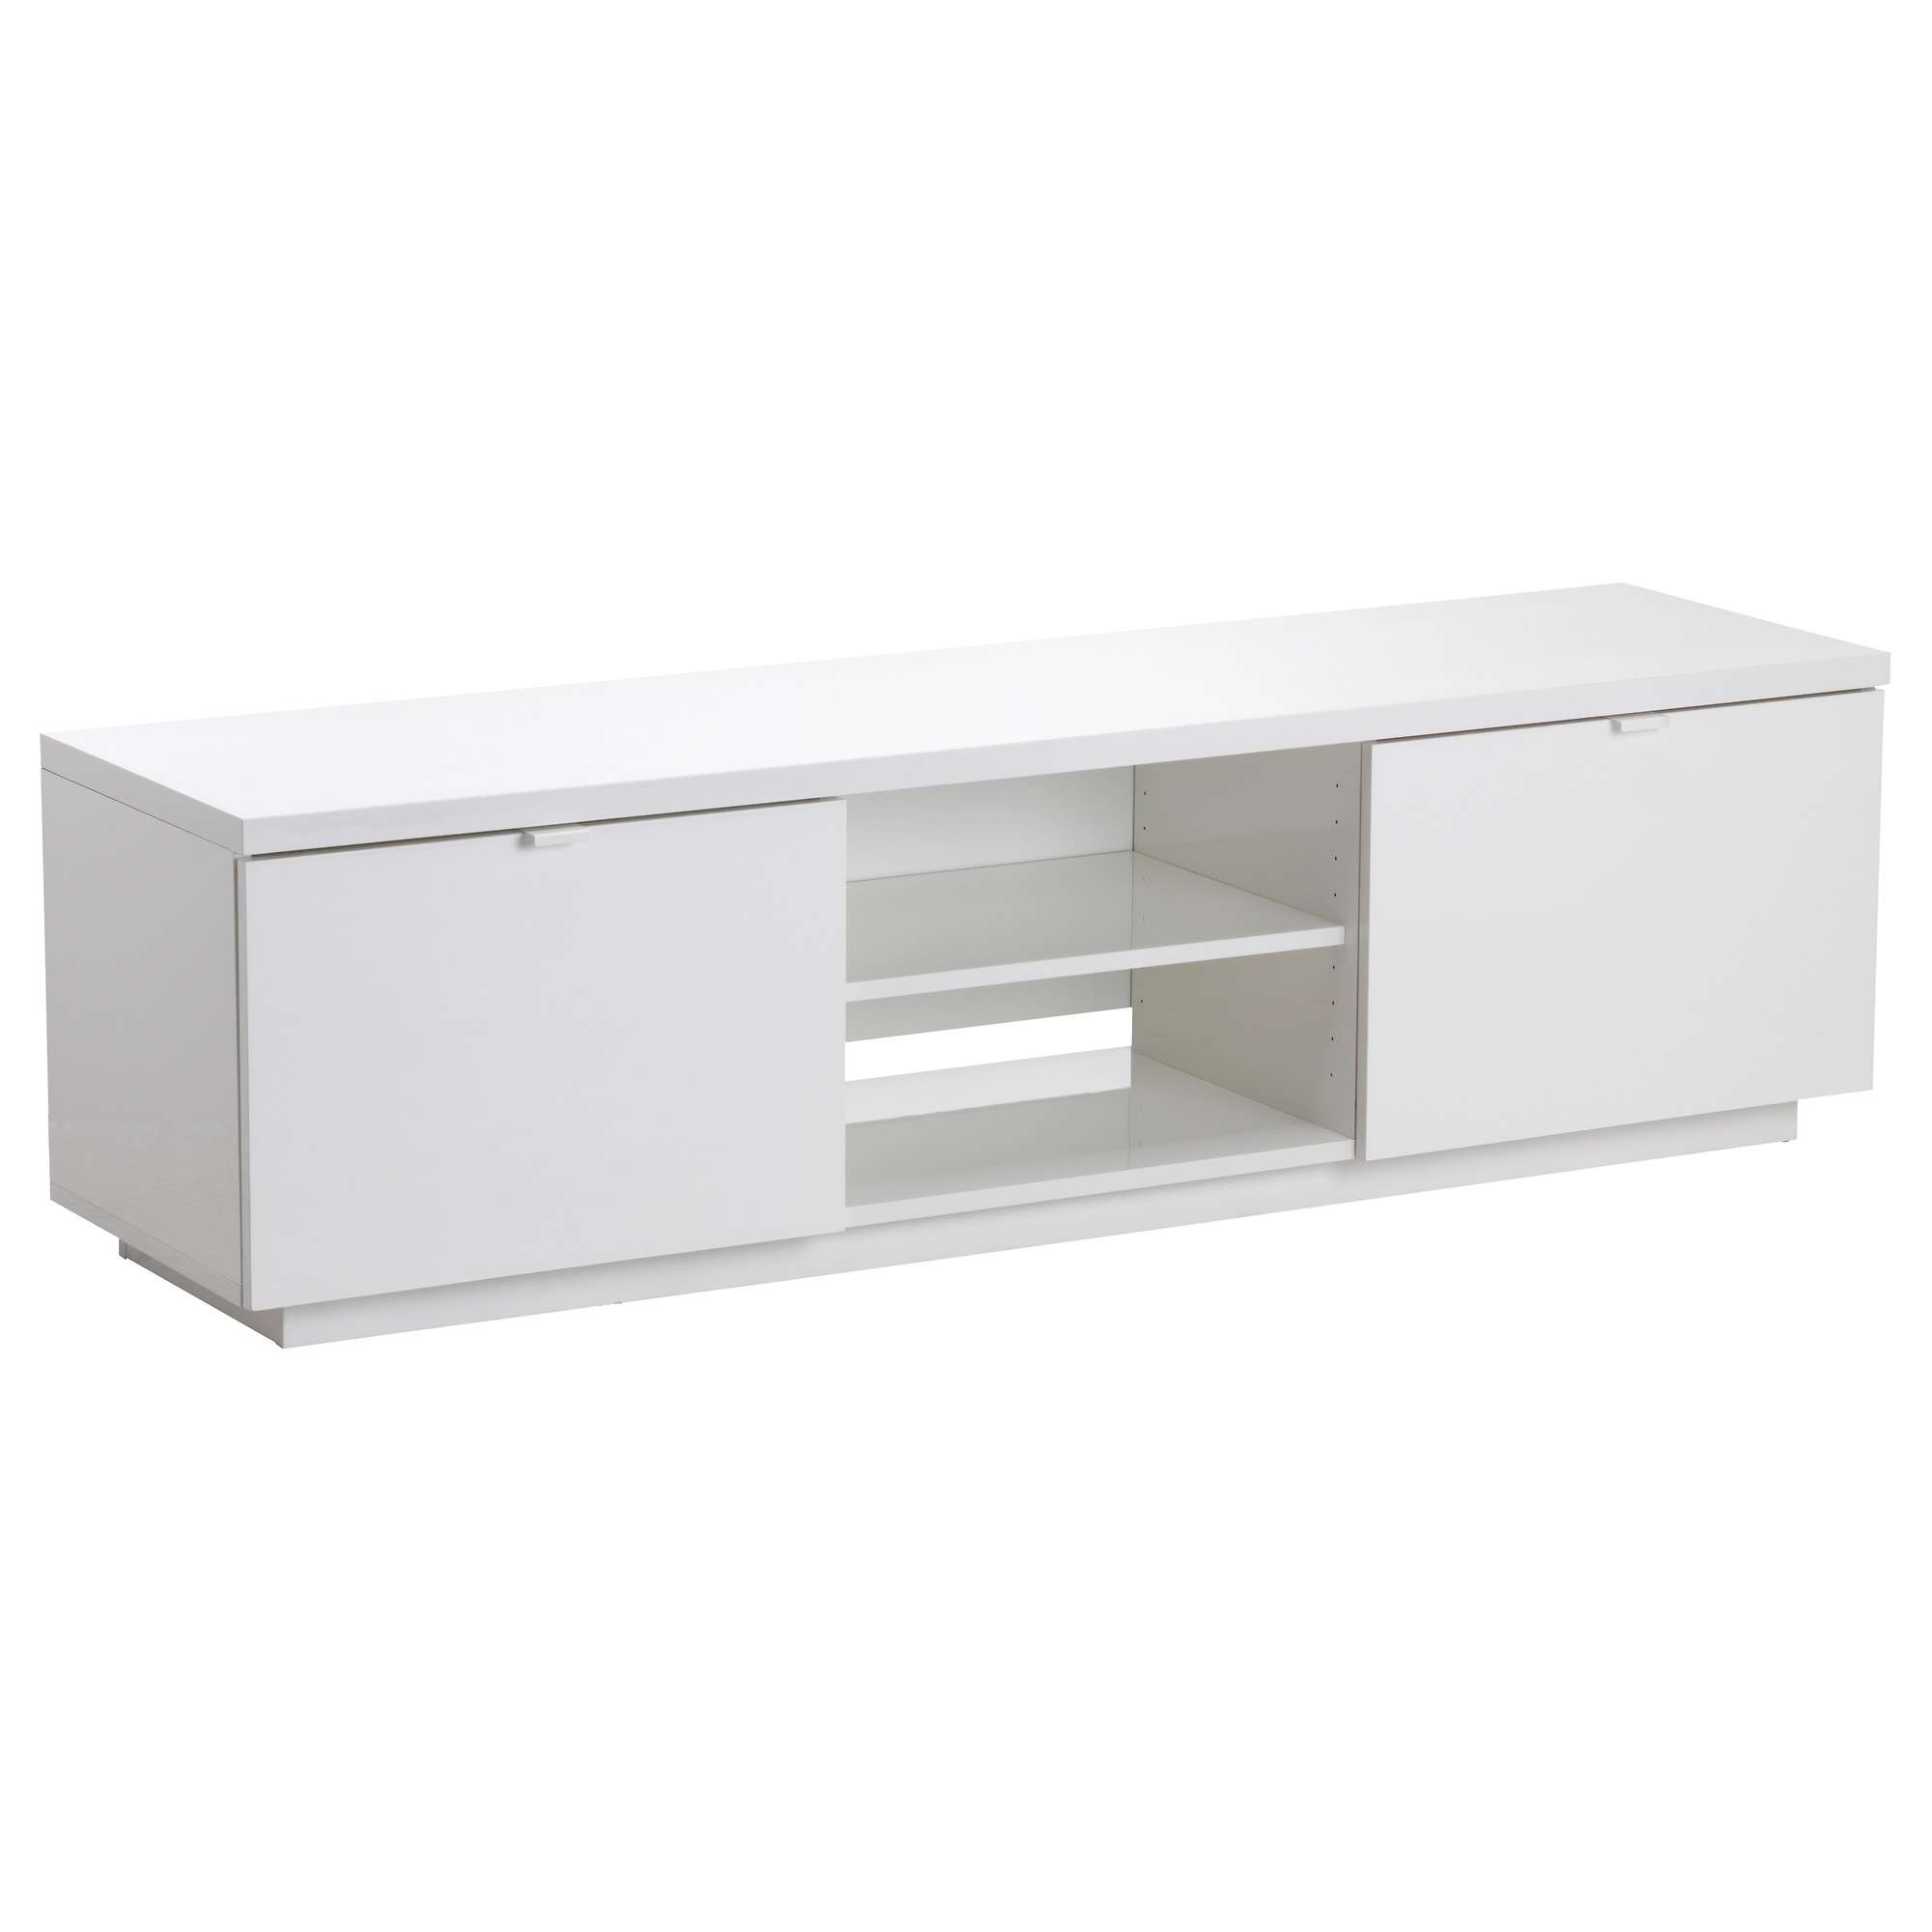 Byås Tv Bench High Gloss White 160x42x45 Cm – Ikea With Regard To Bench Tv Stands (View 15 of 15)